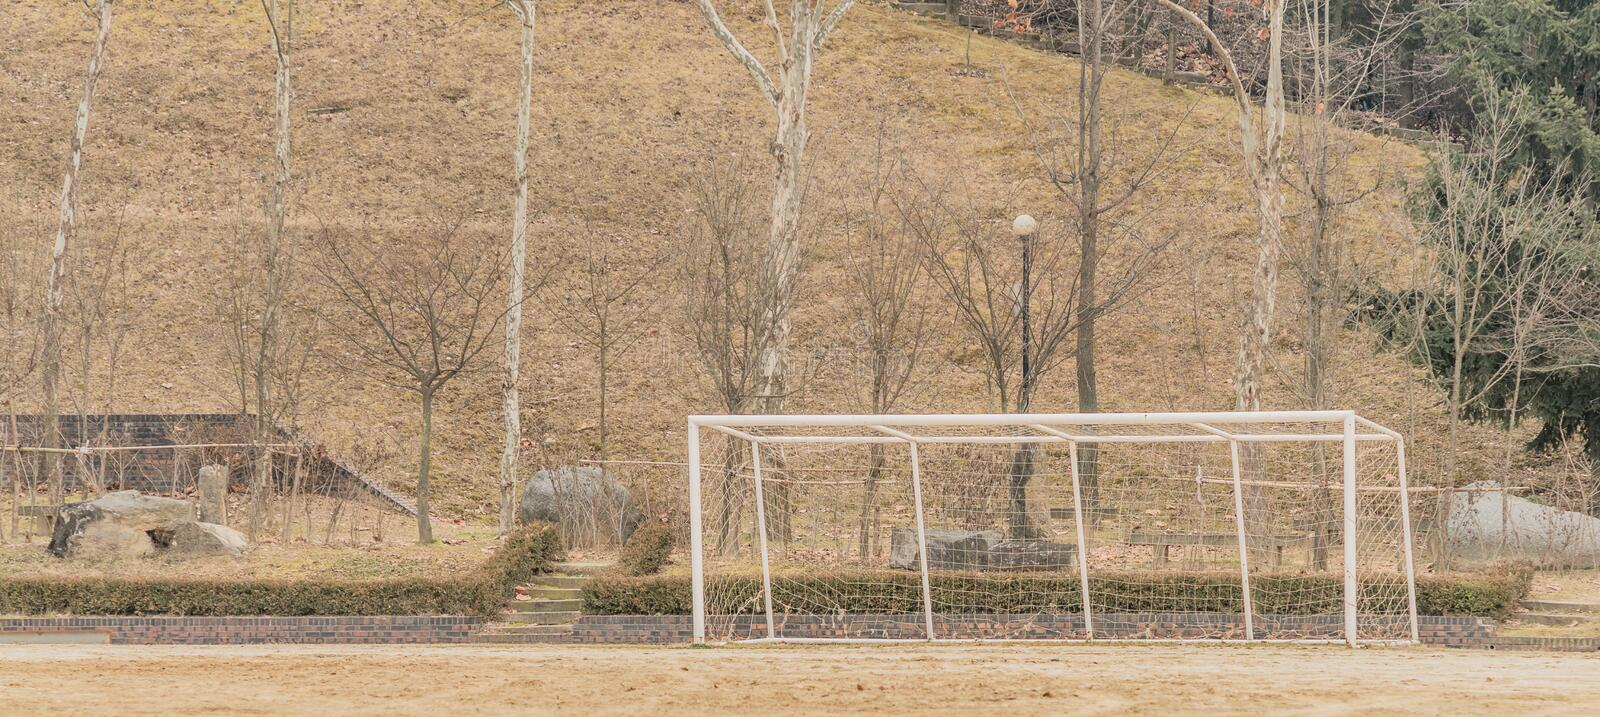 Soccer goal at the edge of a dirt field stock photos